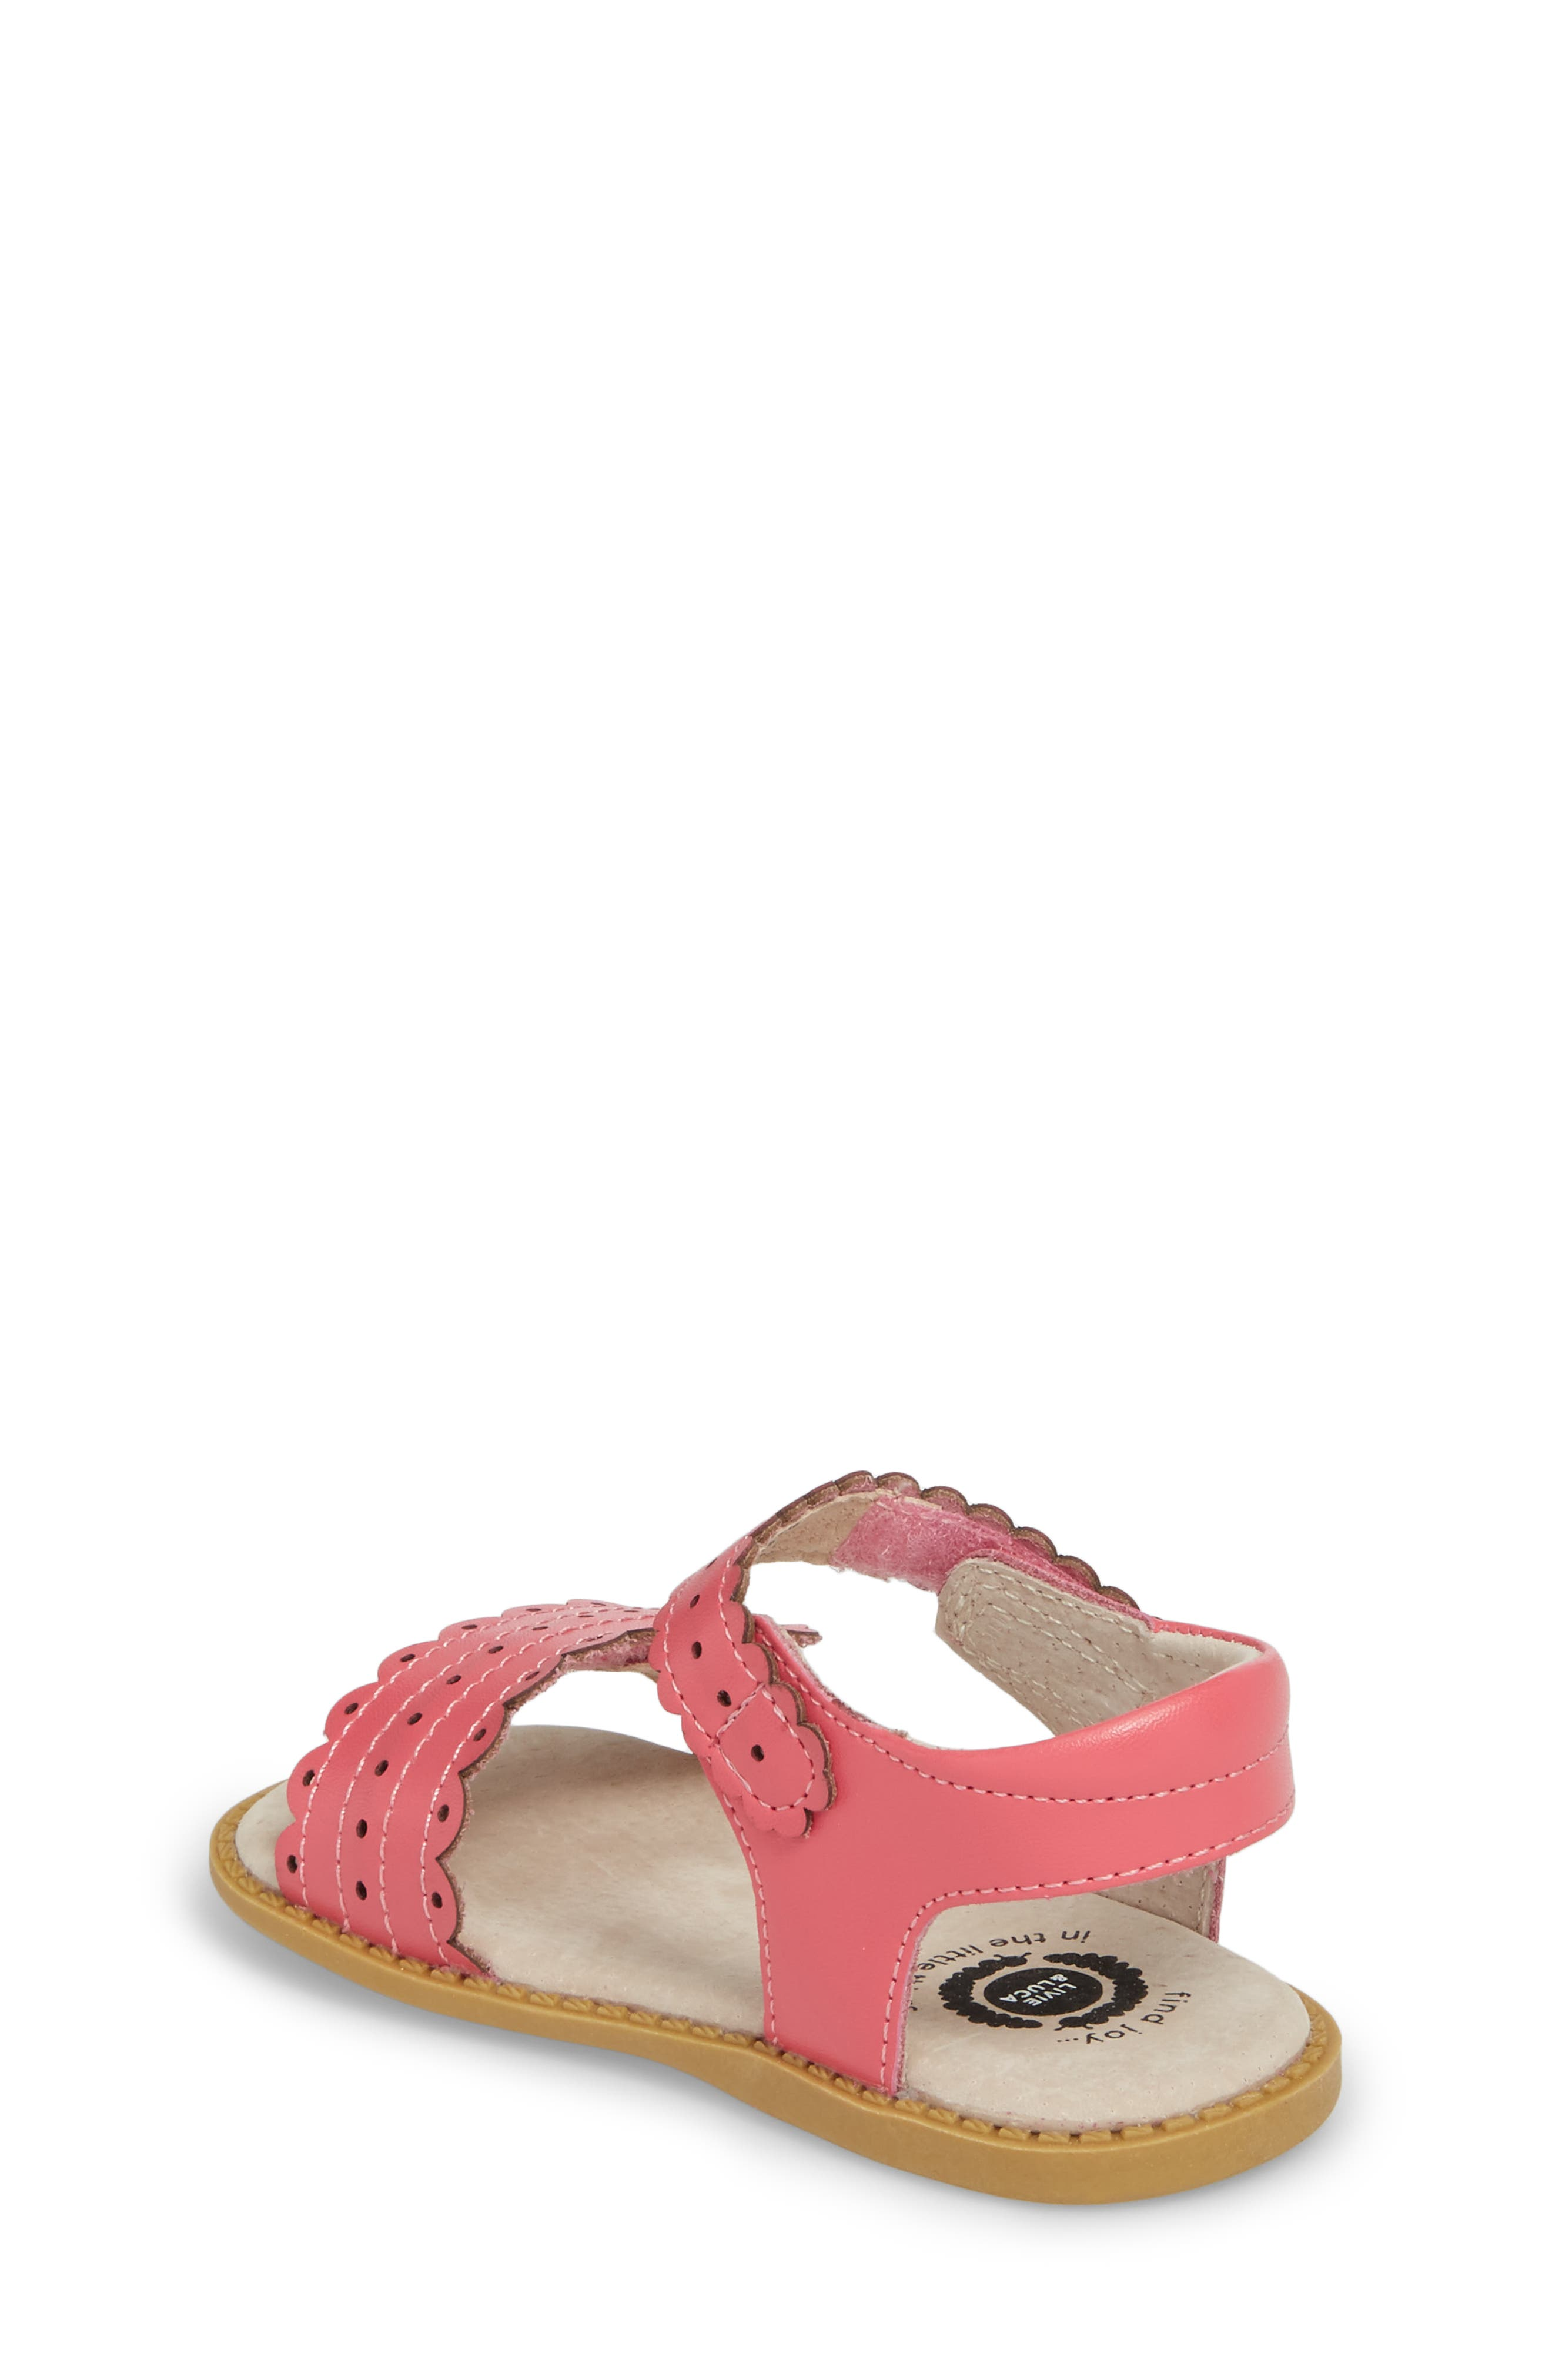 Posey Sandal,                             Alternate thumbnail 2, color,                             ROSY PINK